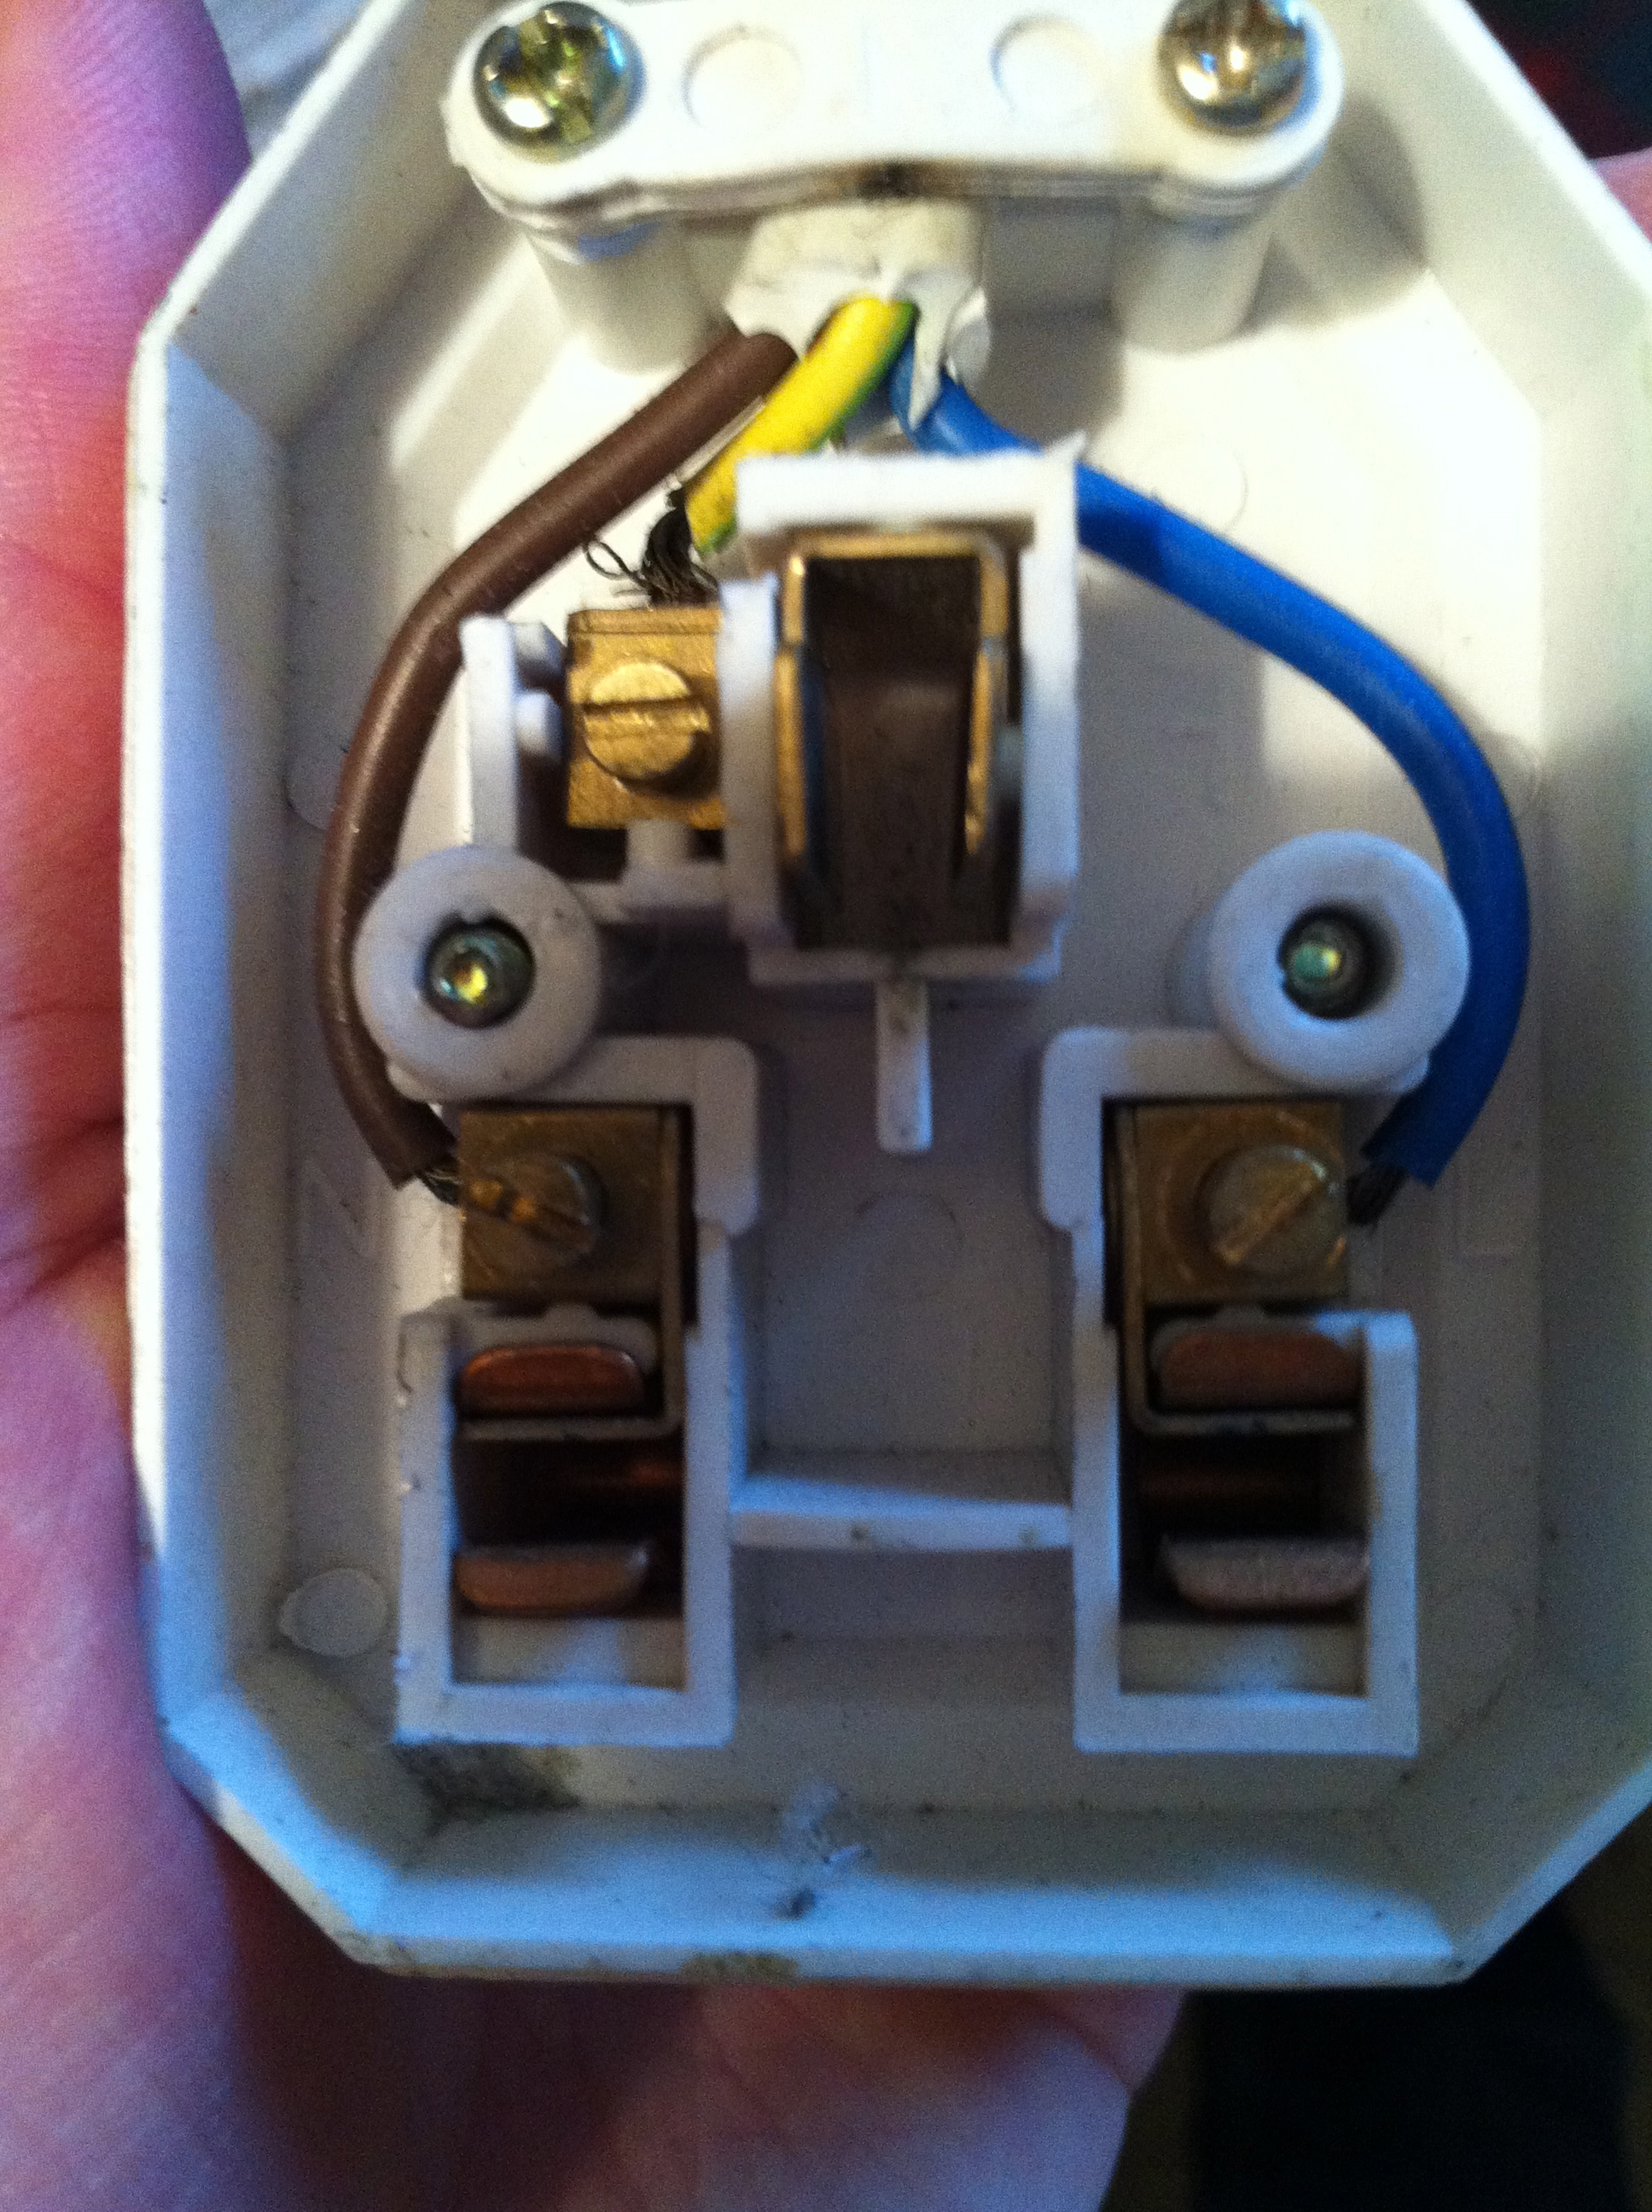 Extension socket incorrectly wired | PAT Perspective Limited